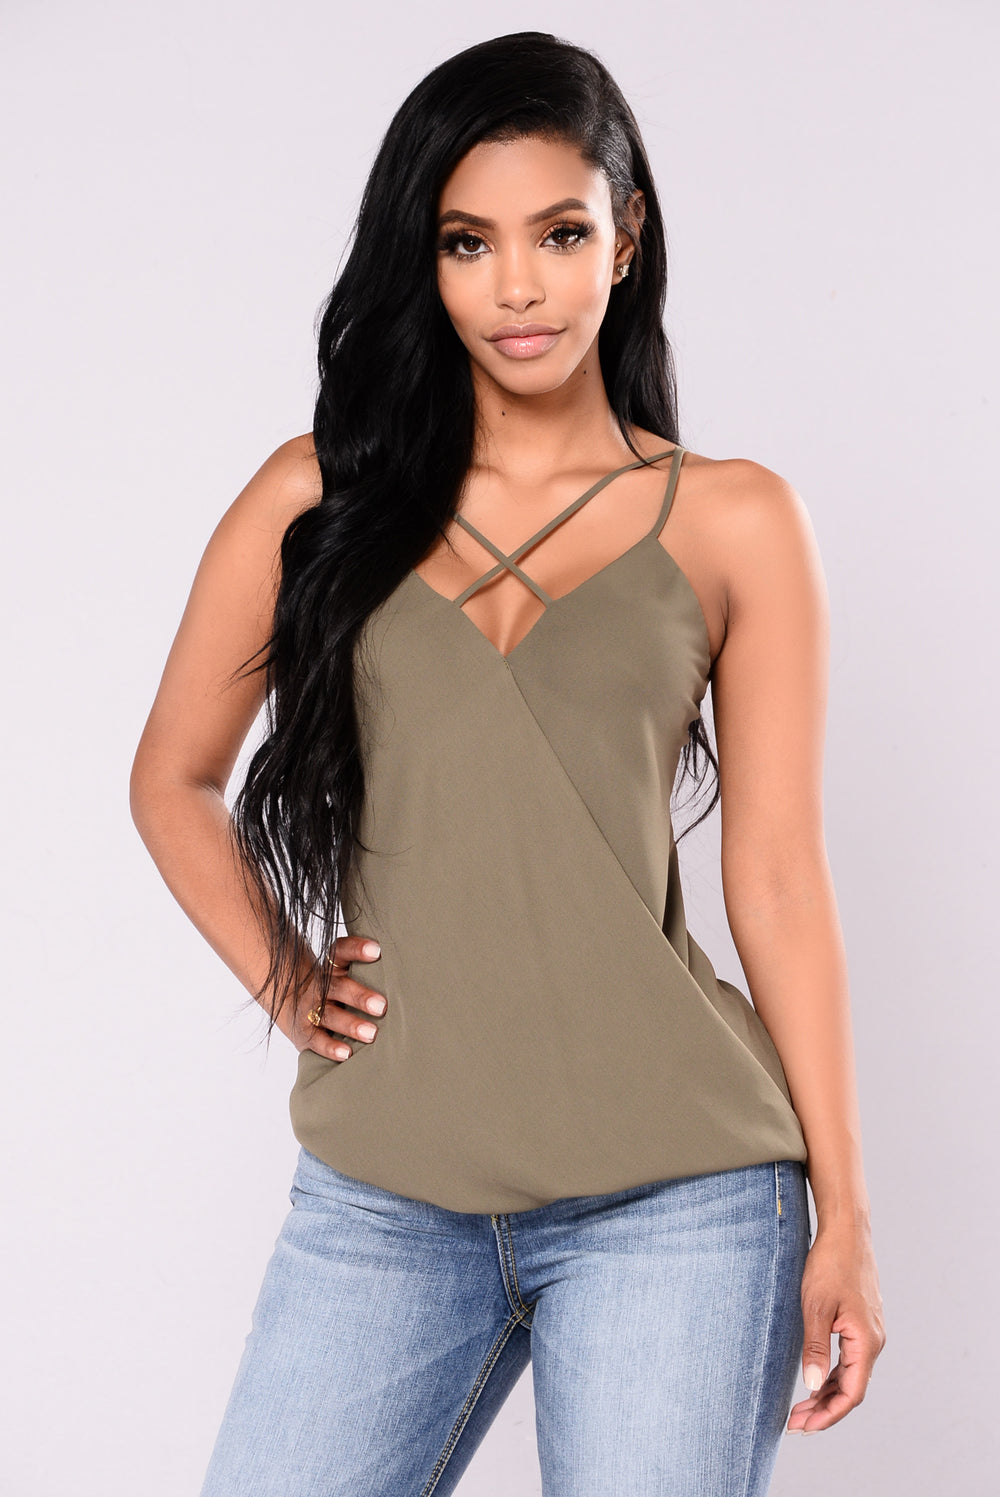 Flaming Sambuca Surplice Top - Olive